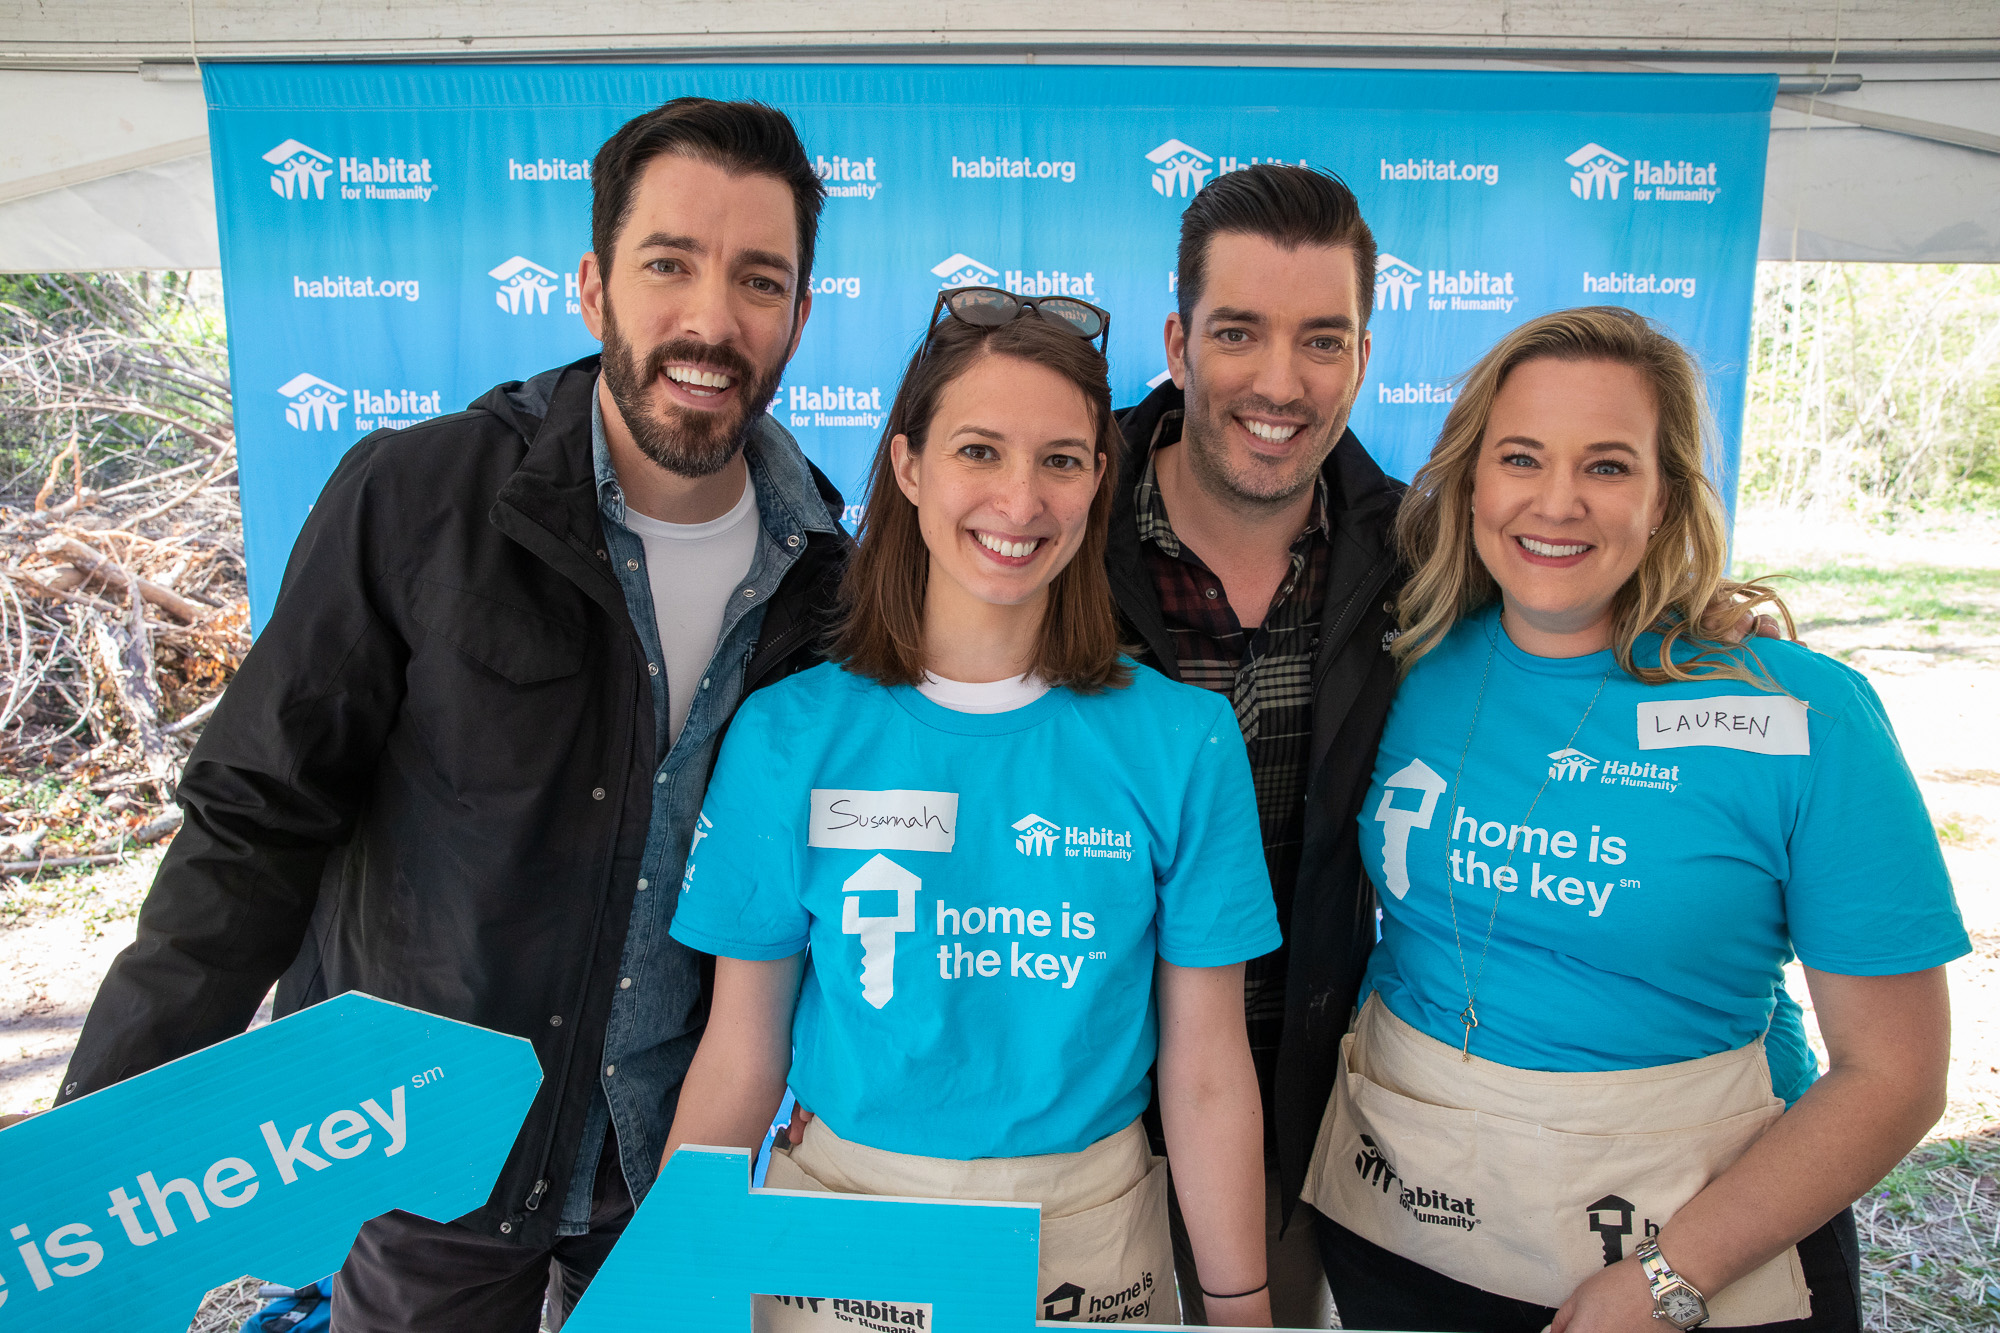 Volunteers with Nest, a Google brand, join Drew and Jonathan Scott at the launch of the Home is the Key campaign in Atlanta.